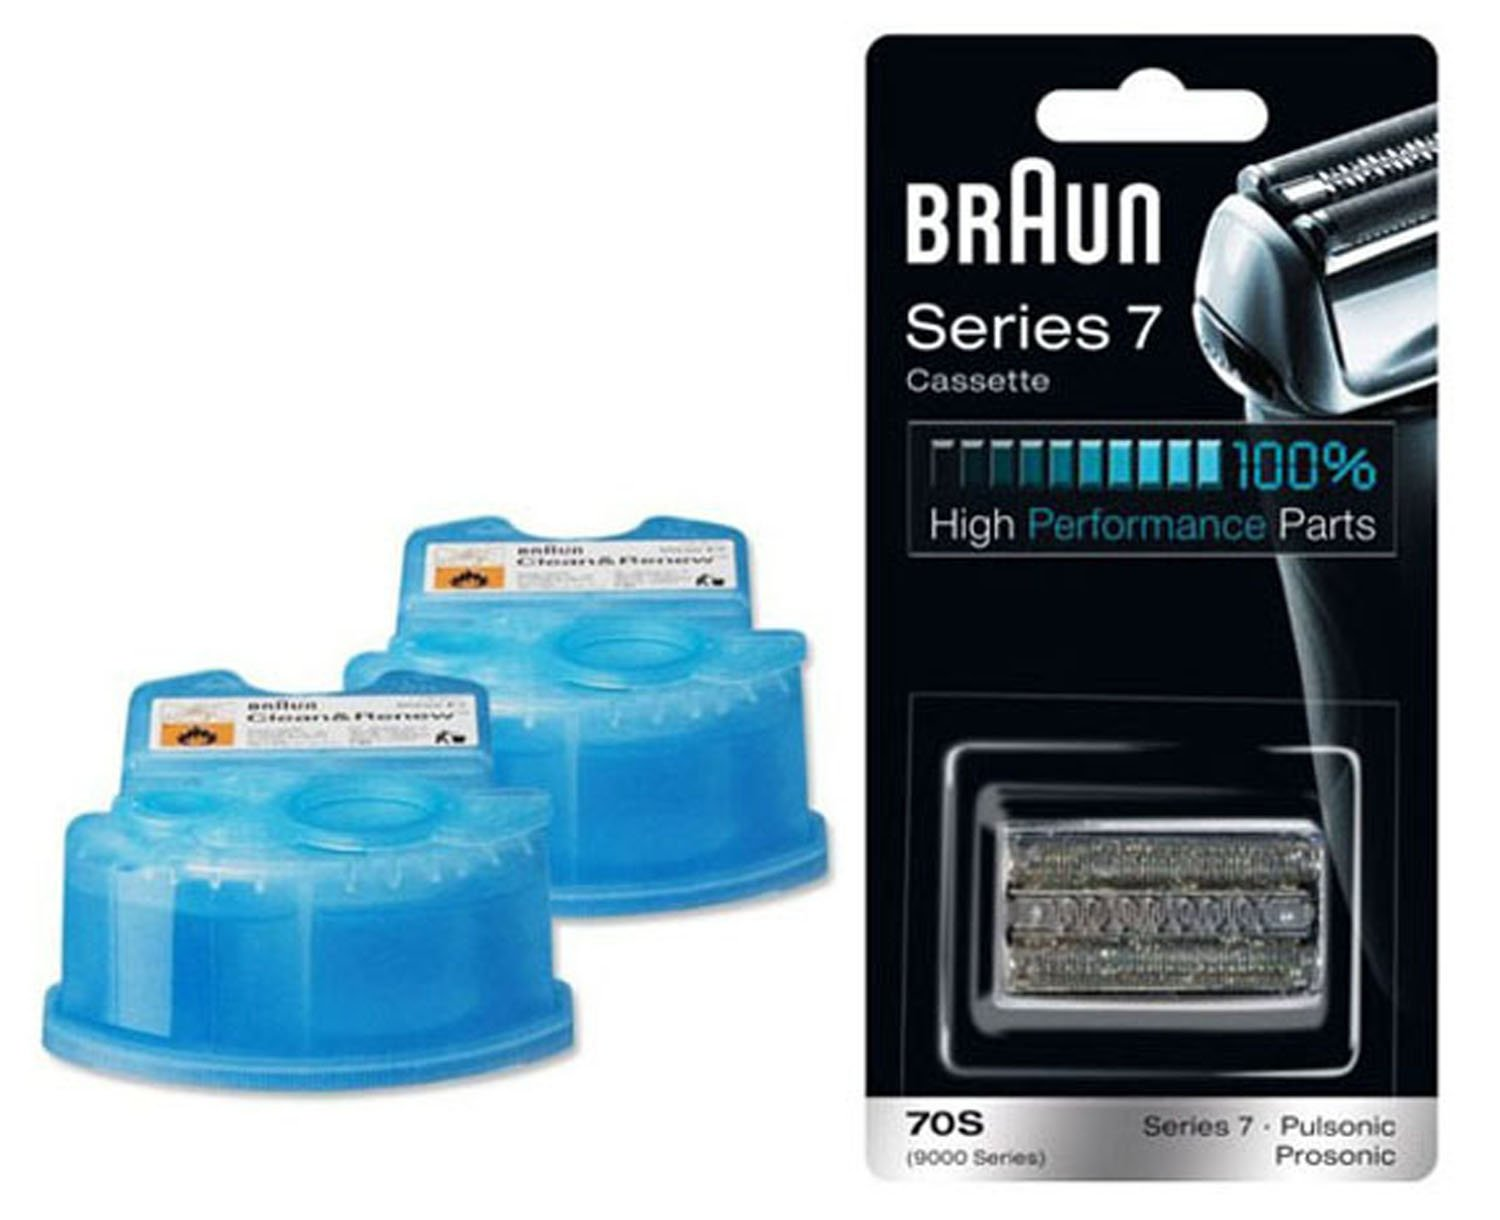 BRAUN 70S + CCR2 Cassette + Clean & Renew Refills CCR 2 Replacement Pack